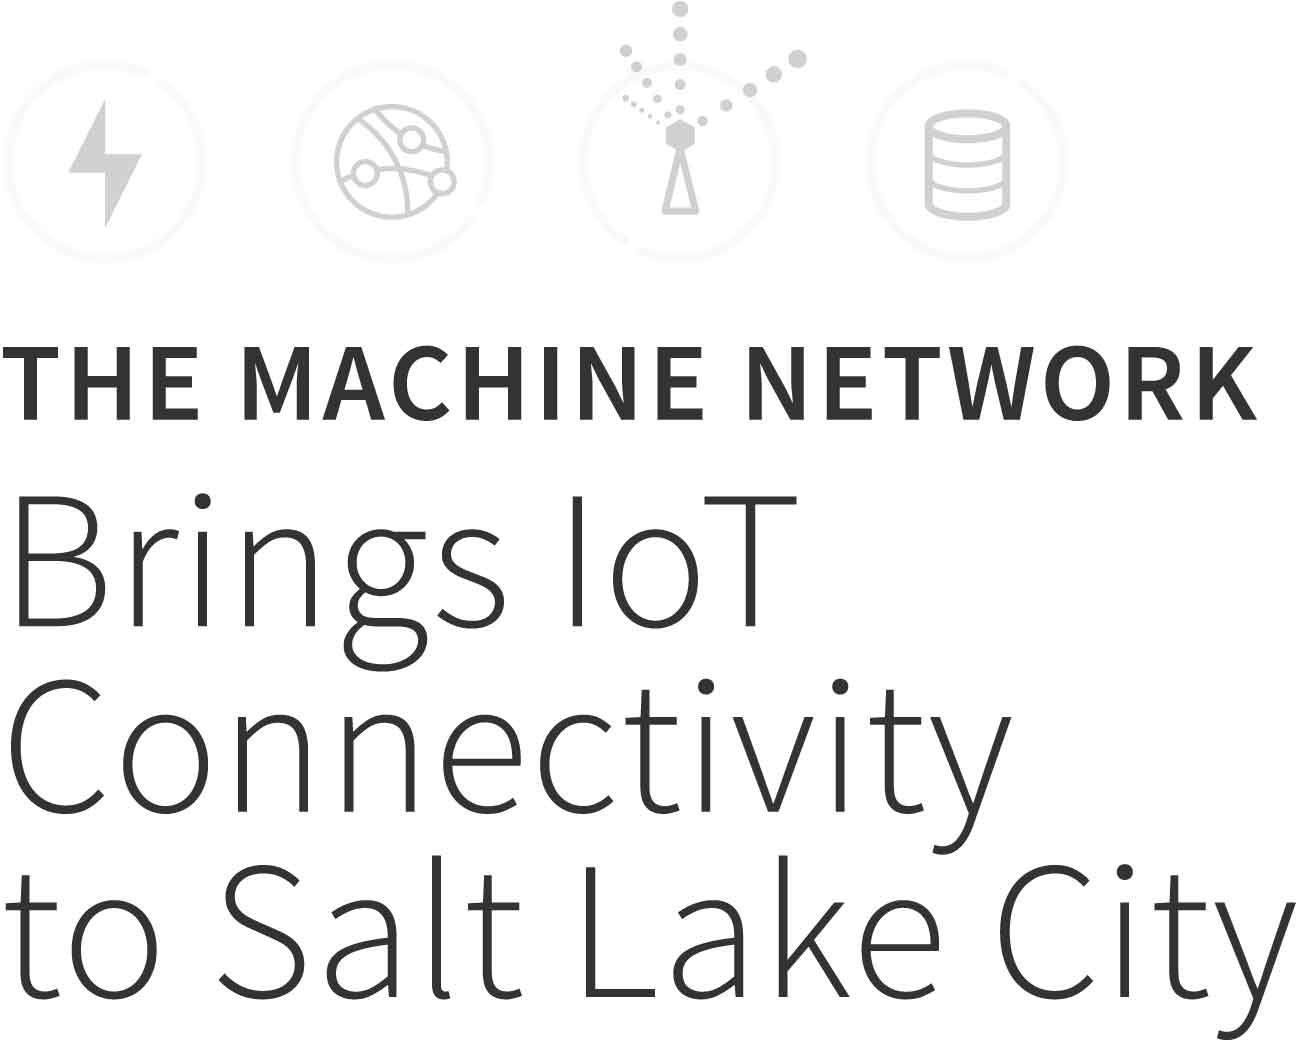 The Machine Network Brings IoT Connectivity to Salt Lake City